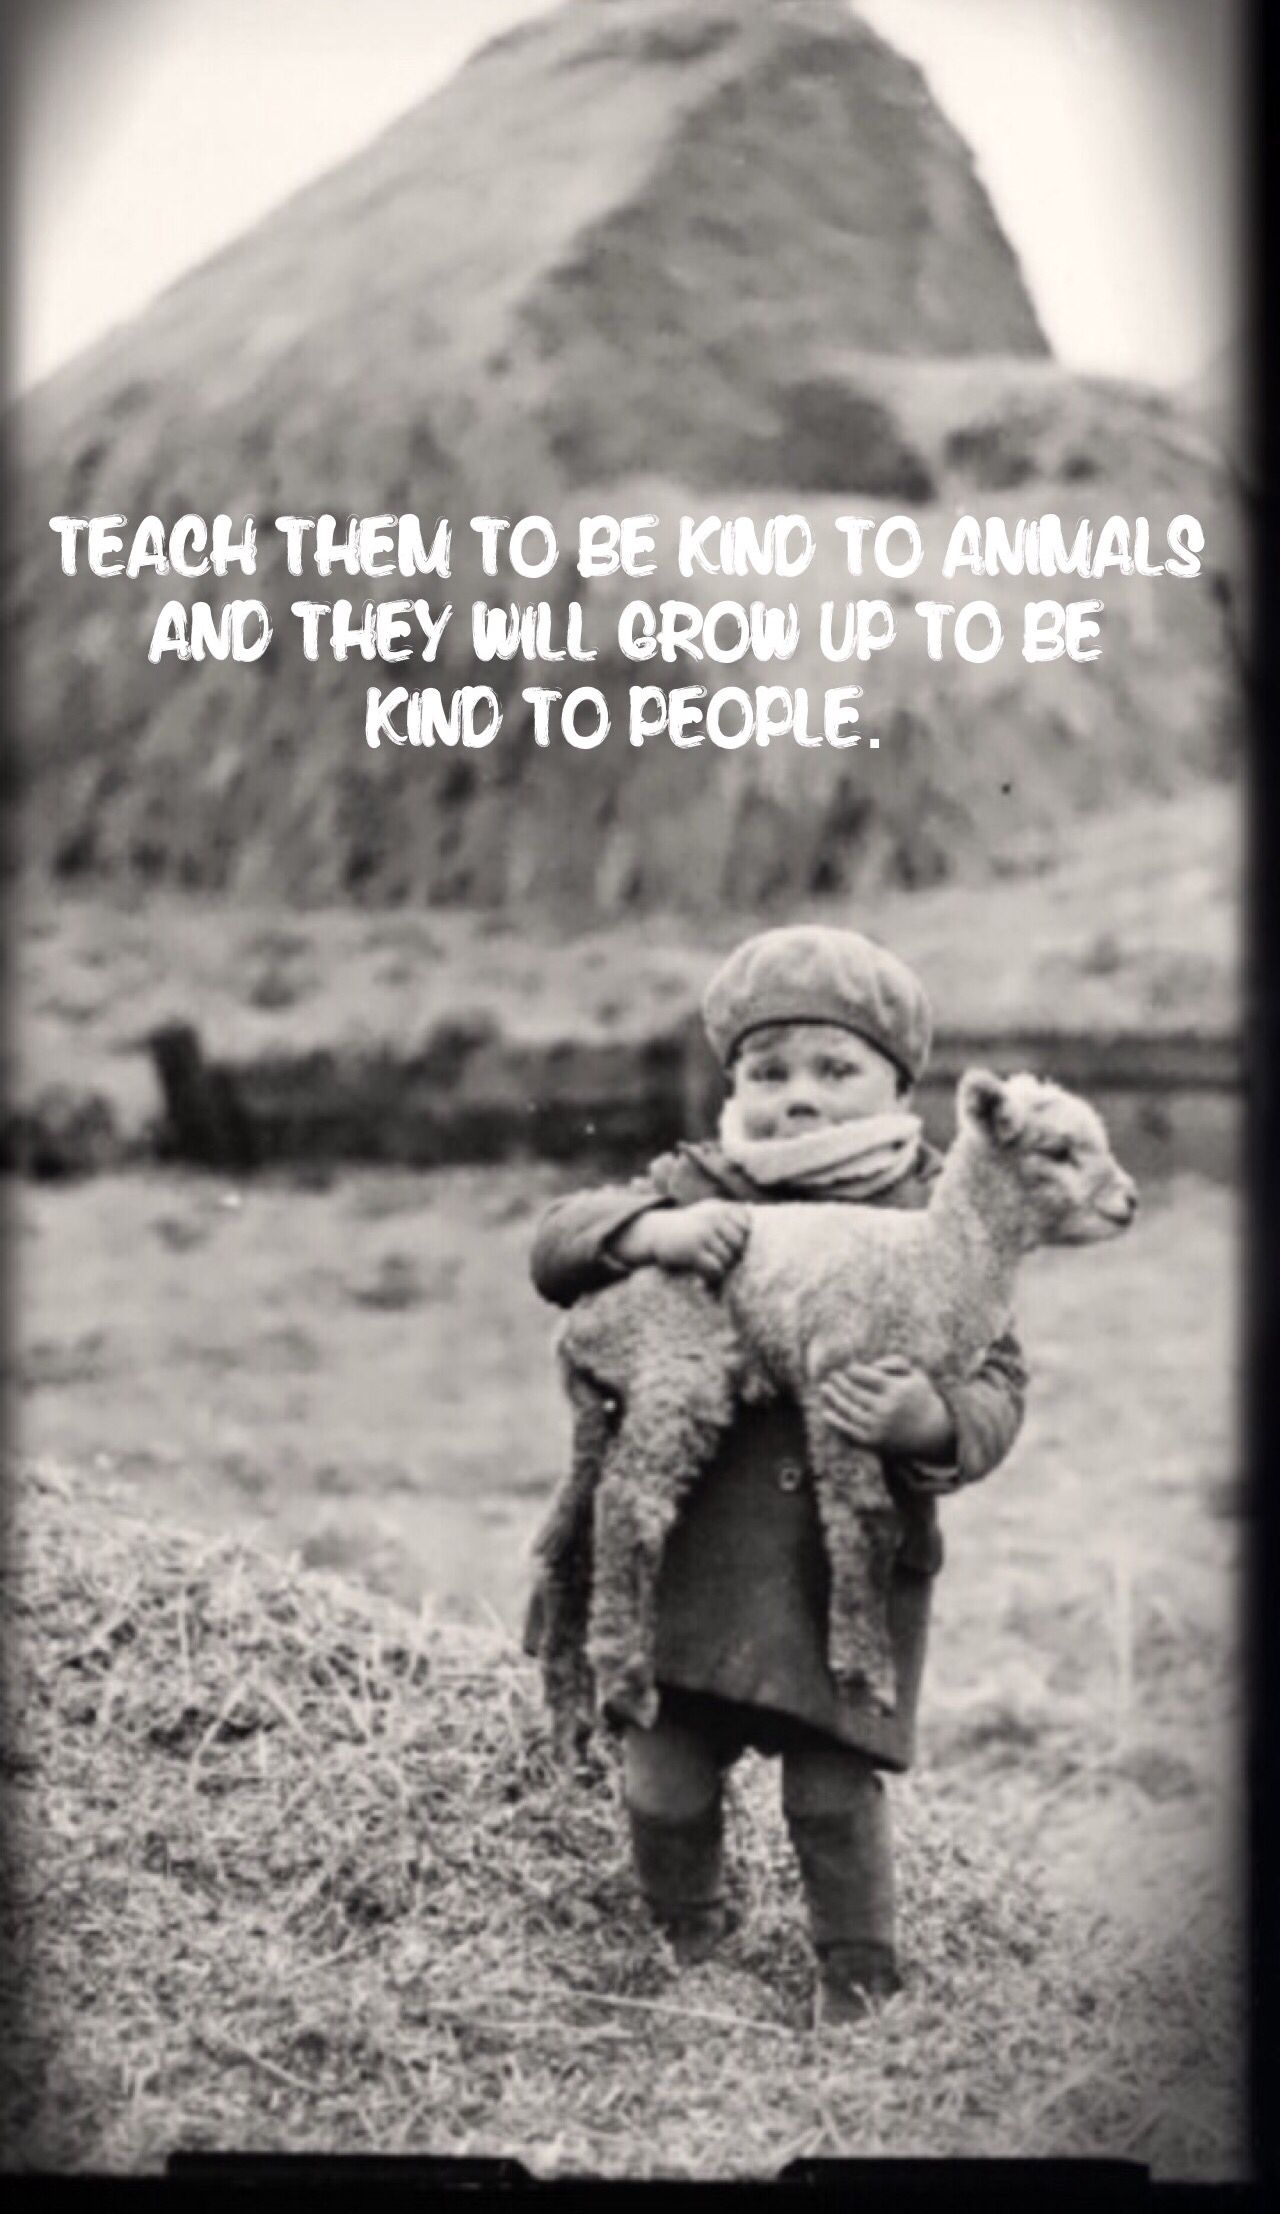 Essay on kindness to animals for kids